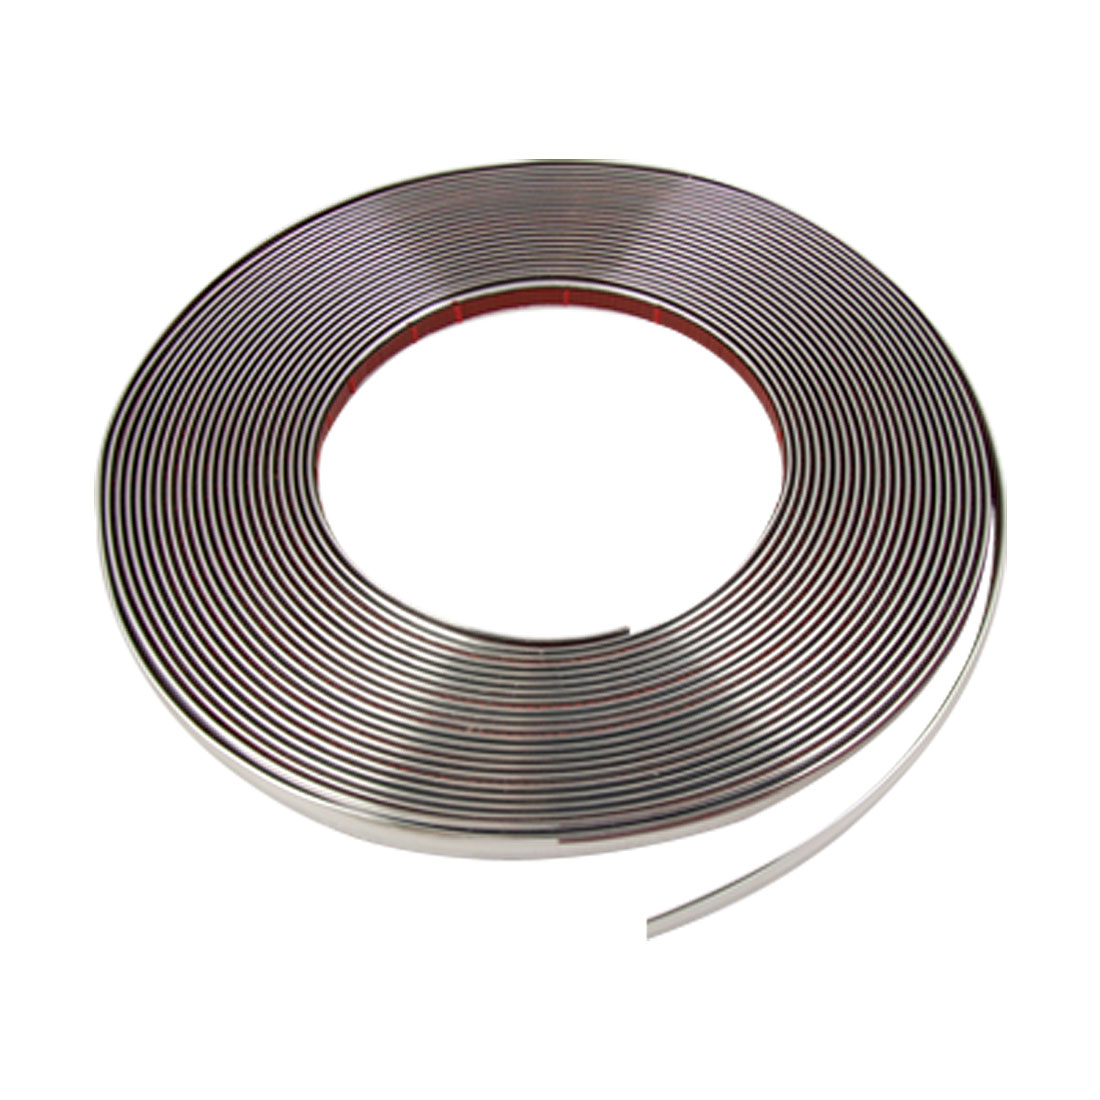 10mm x 15M Silver Tone Width Flexible Chrome Moulding Trim Strip